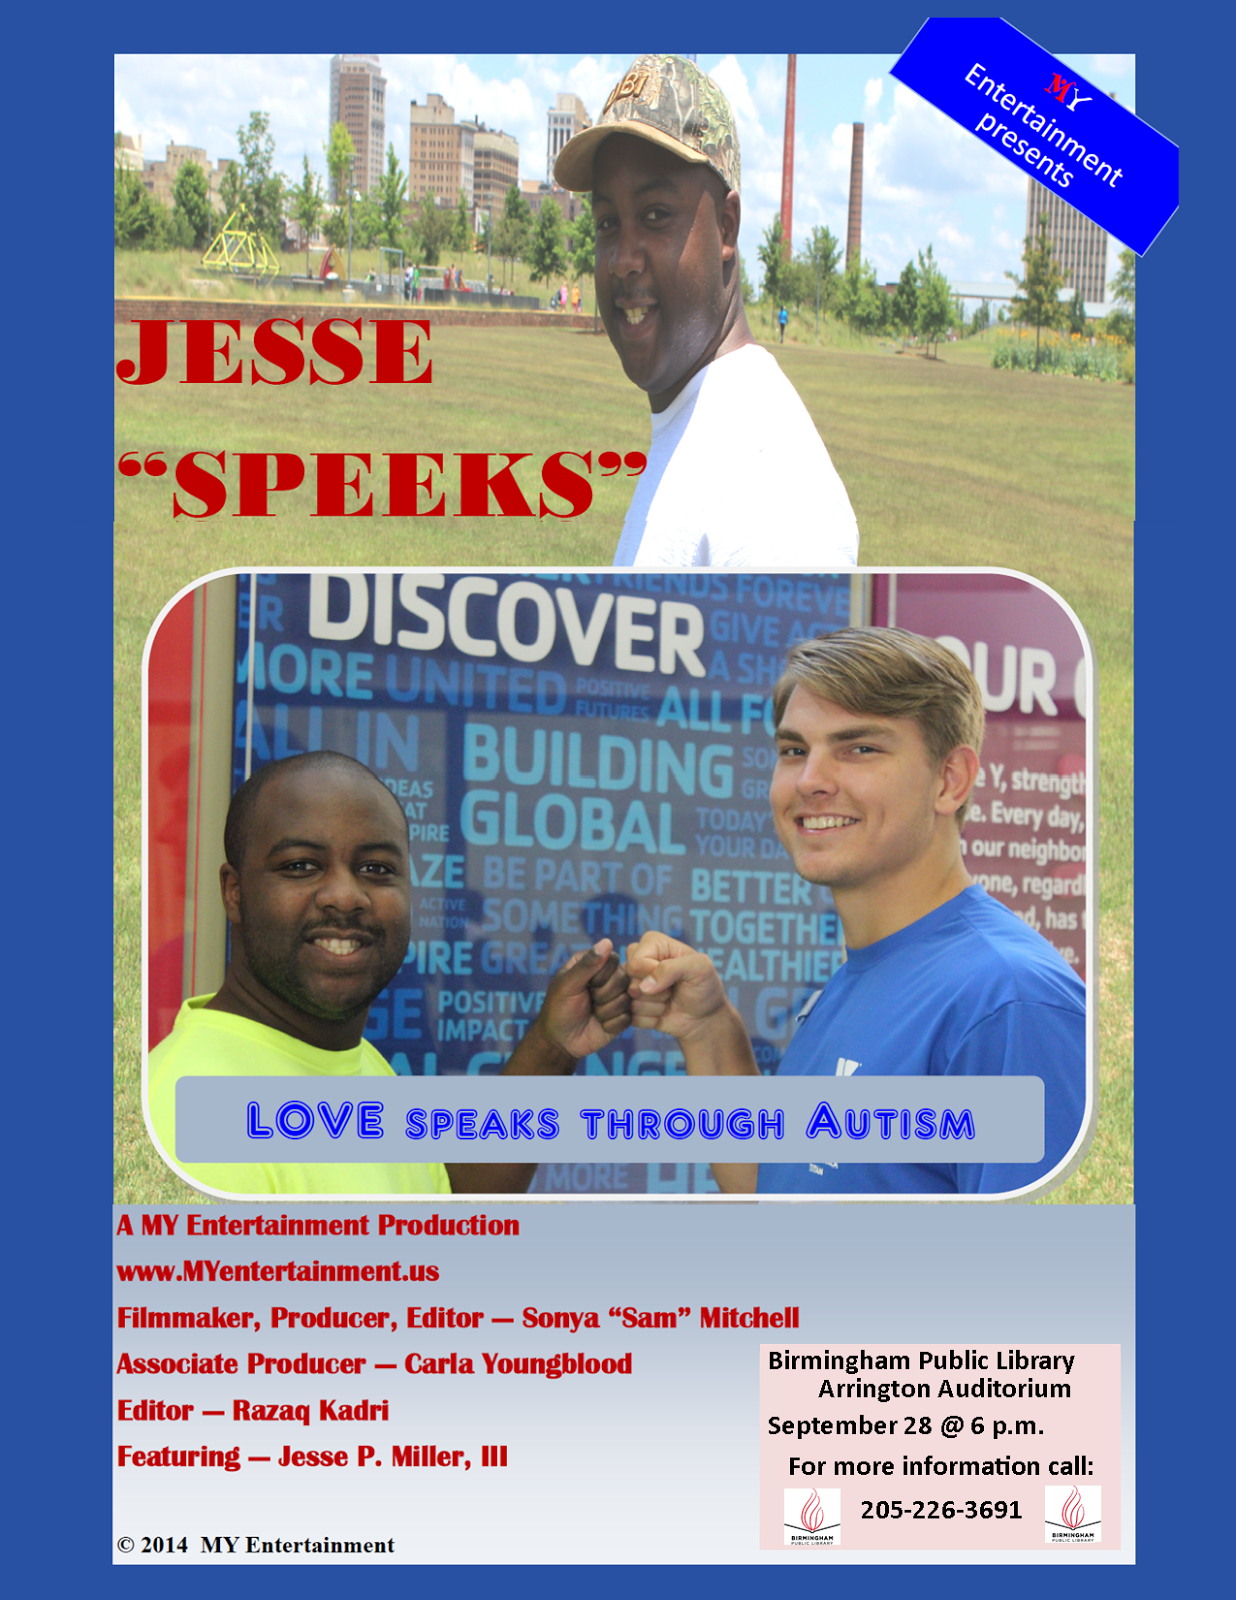 Jesse Speeks event poster